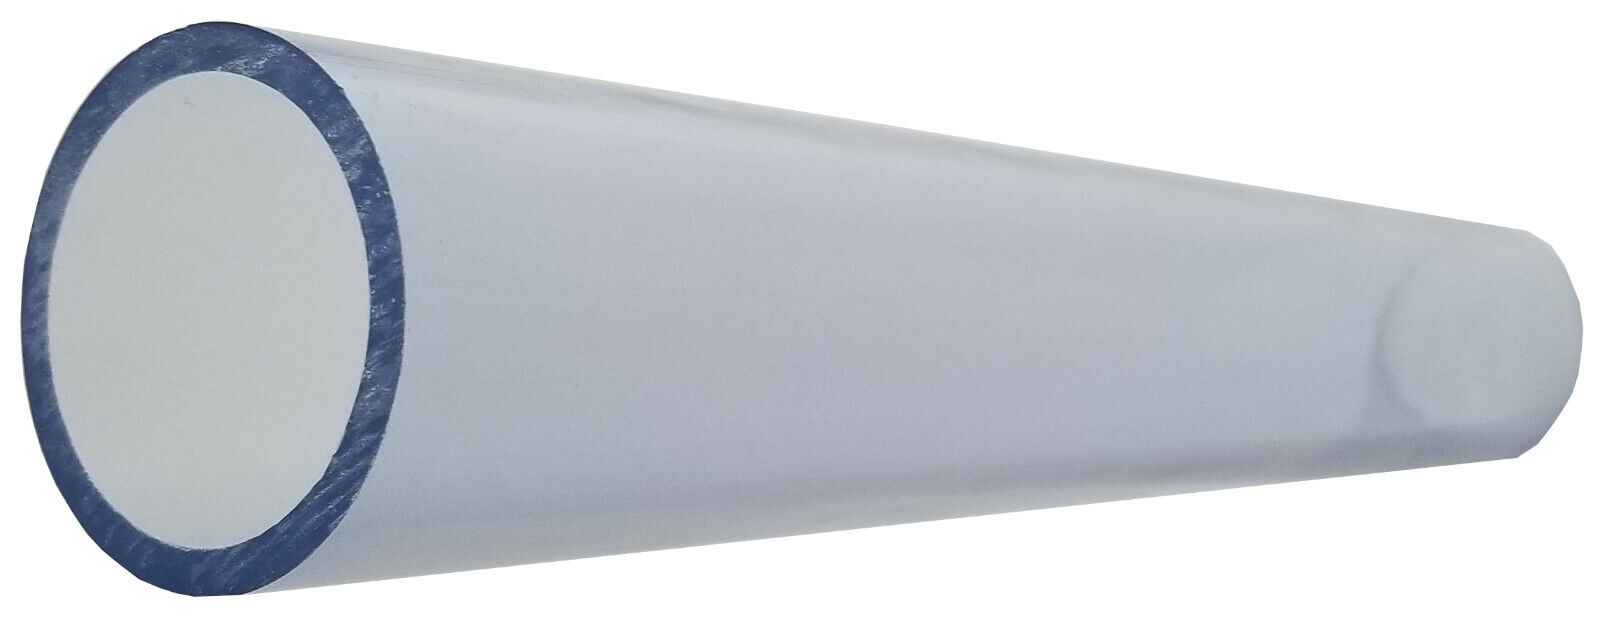 "1/2"" to 4"" Diameter Clear PVC Pipe, SCH 40, Choose Your Leng"